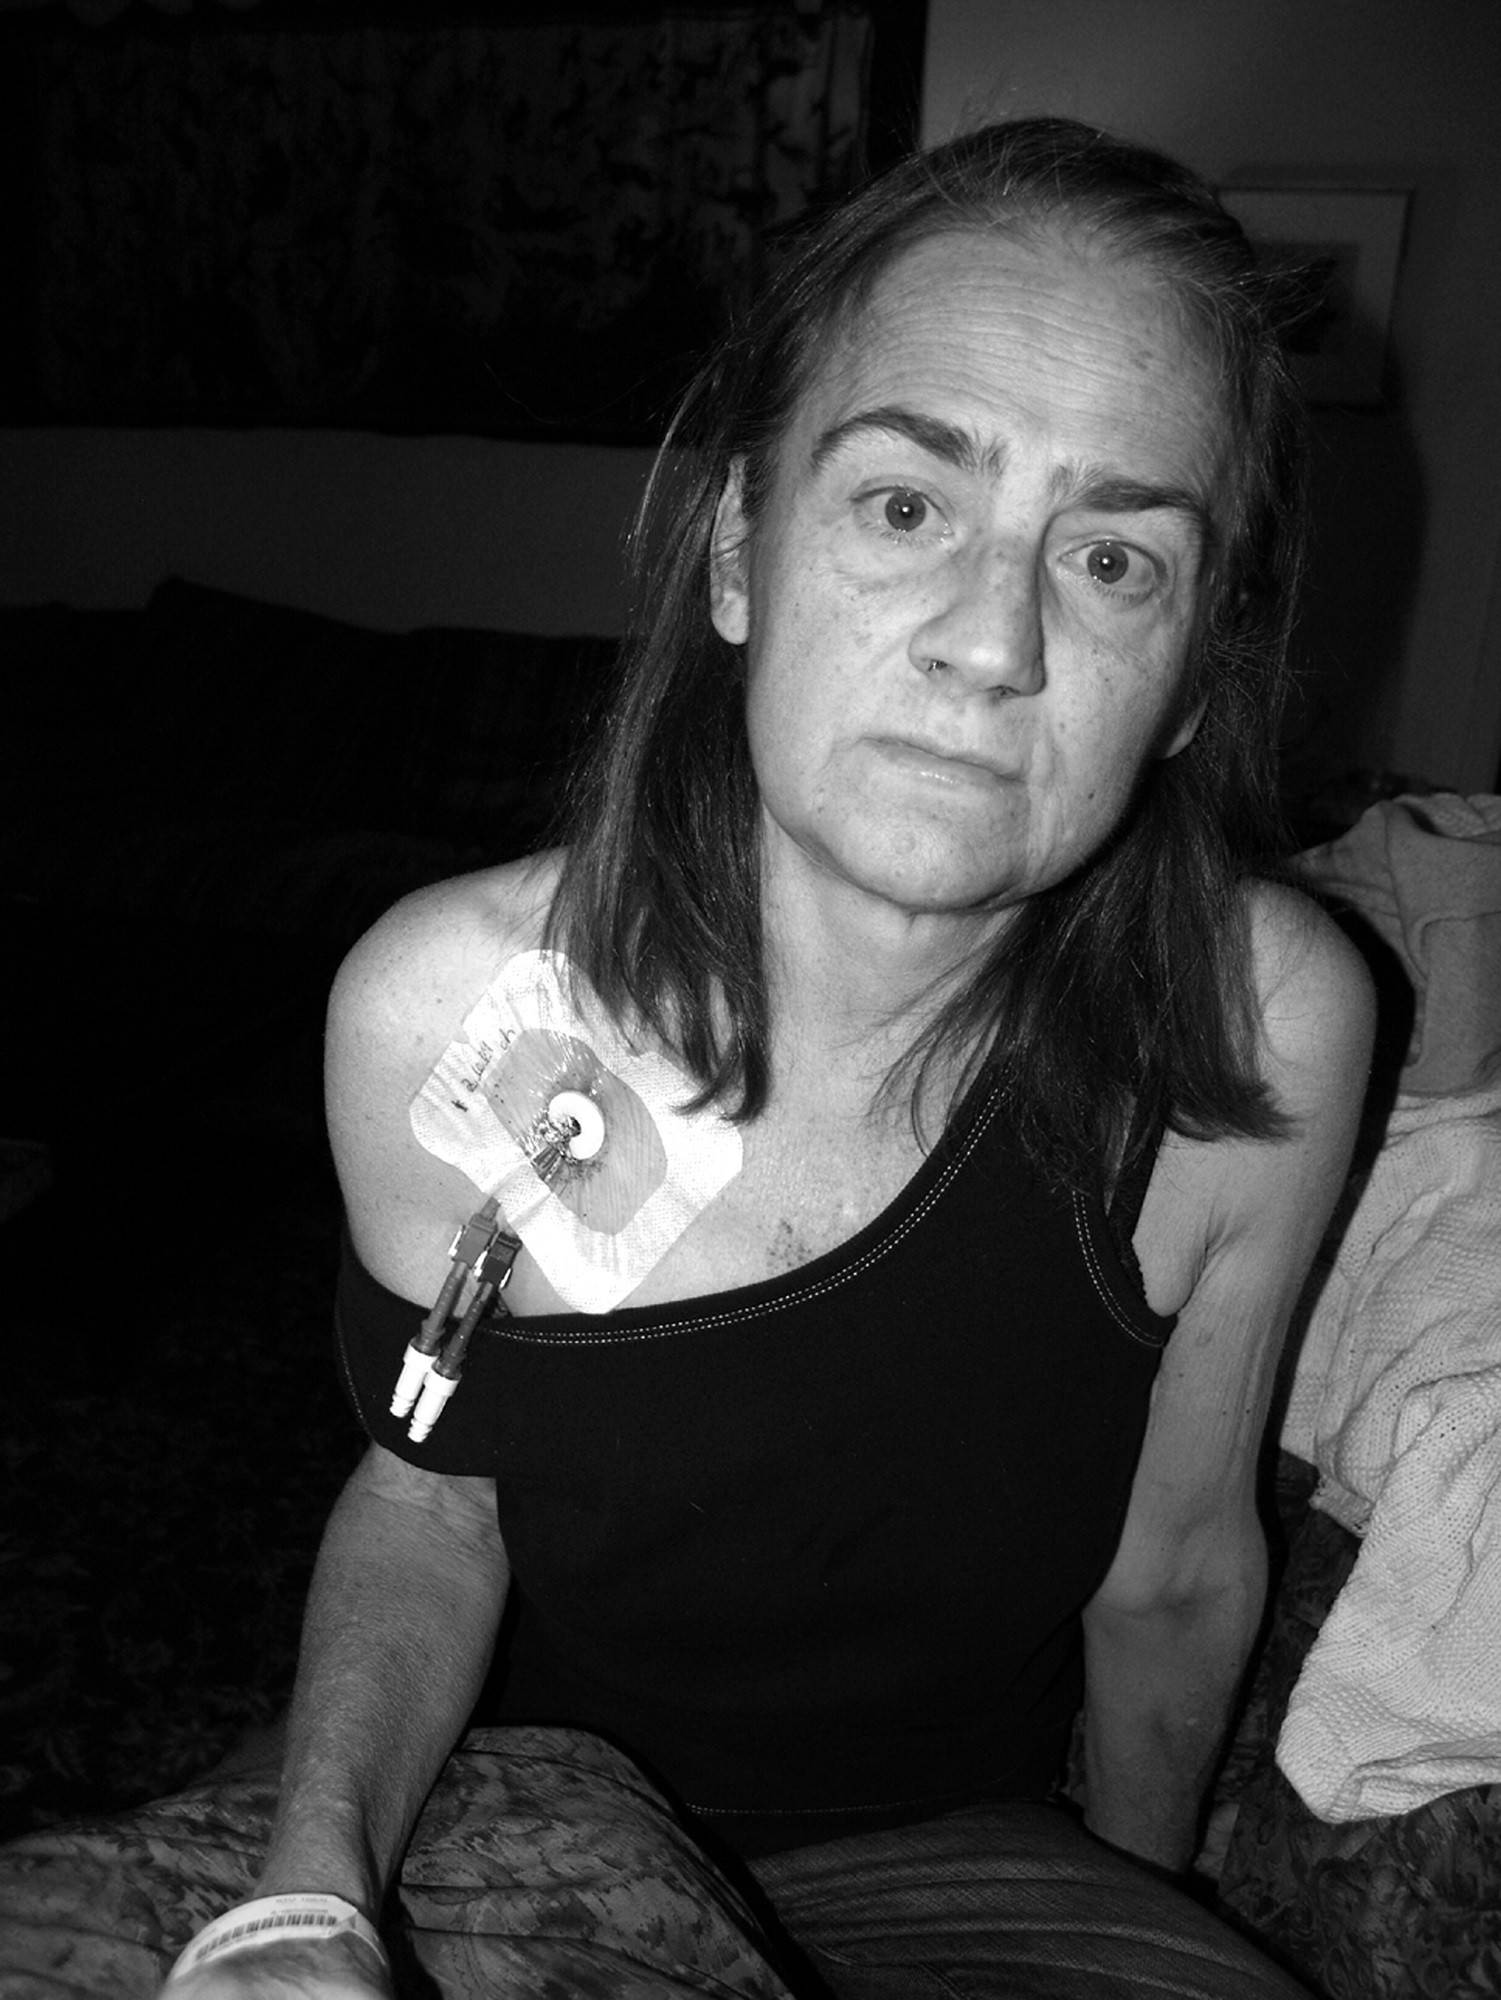 Kidney transplant recipient Irene Schneider shown in 2009 undergoing dialysis before her third transplant.